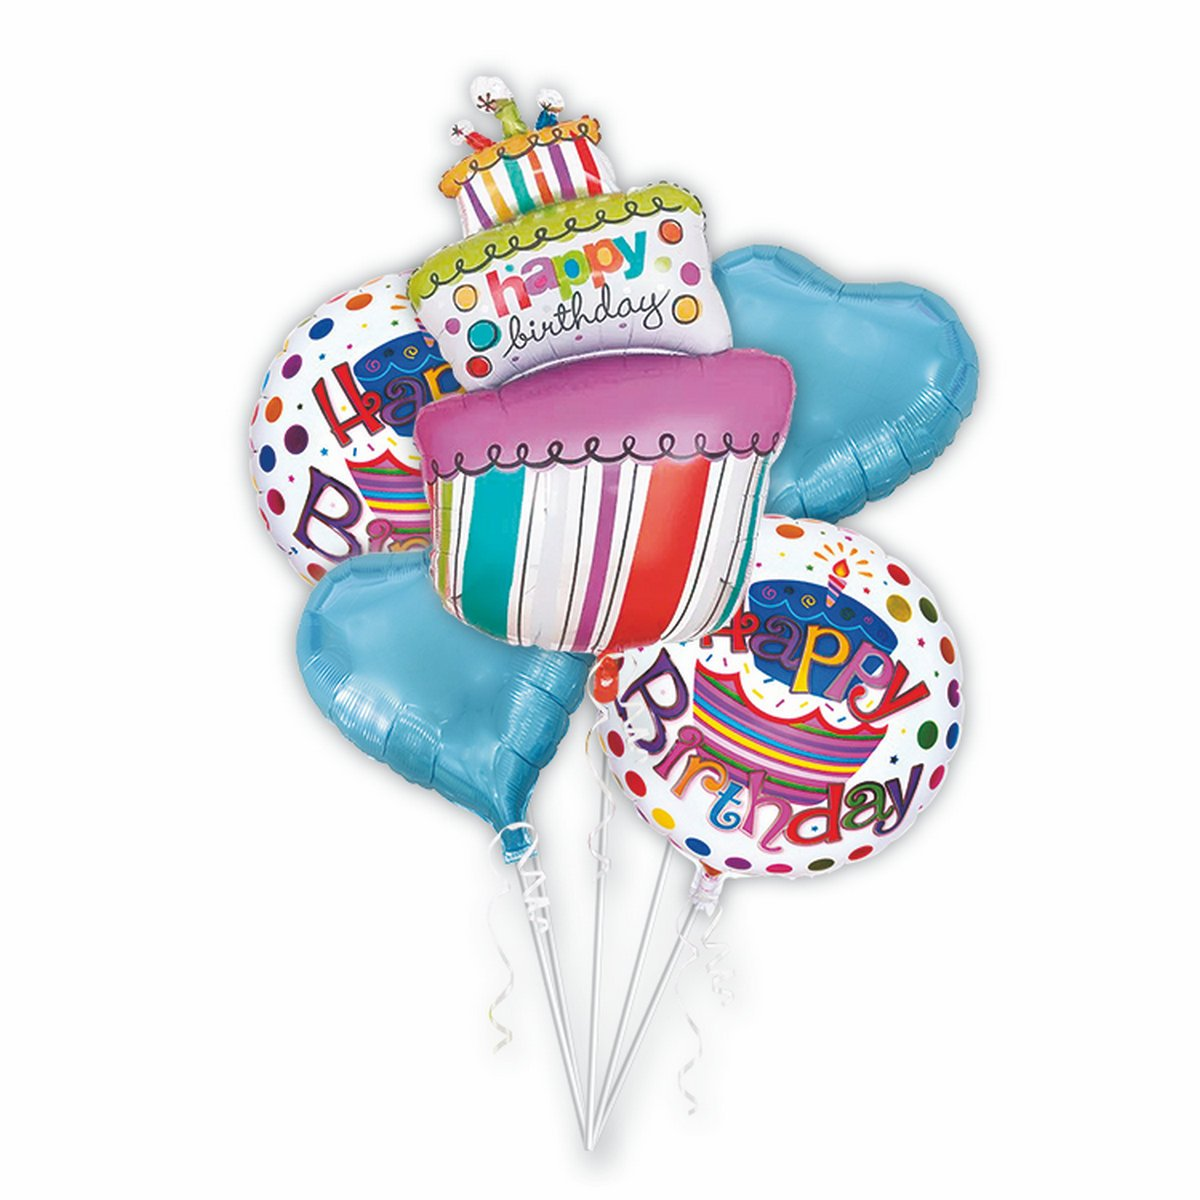 Amazon Mcolour Balloon Birthday Cake Balloons 5 Piece Combination 40 Inch Candles Party Decoration Foil Toys Games